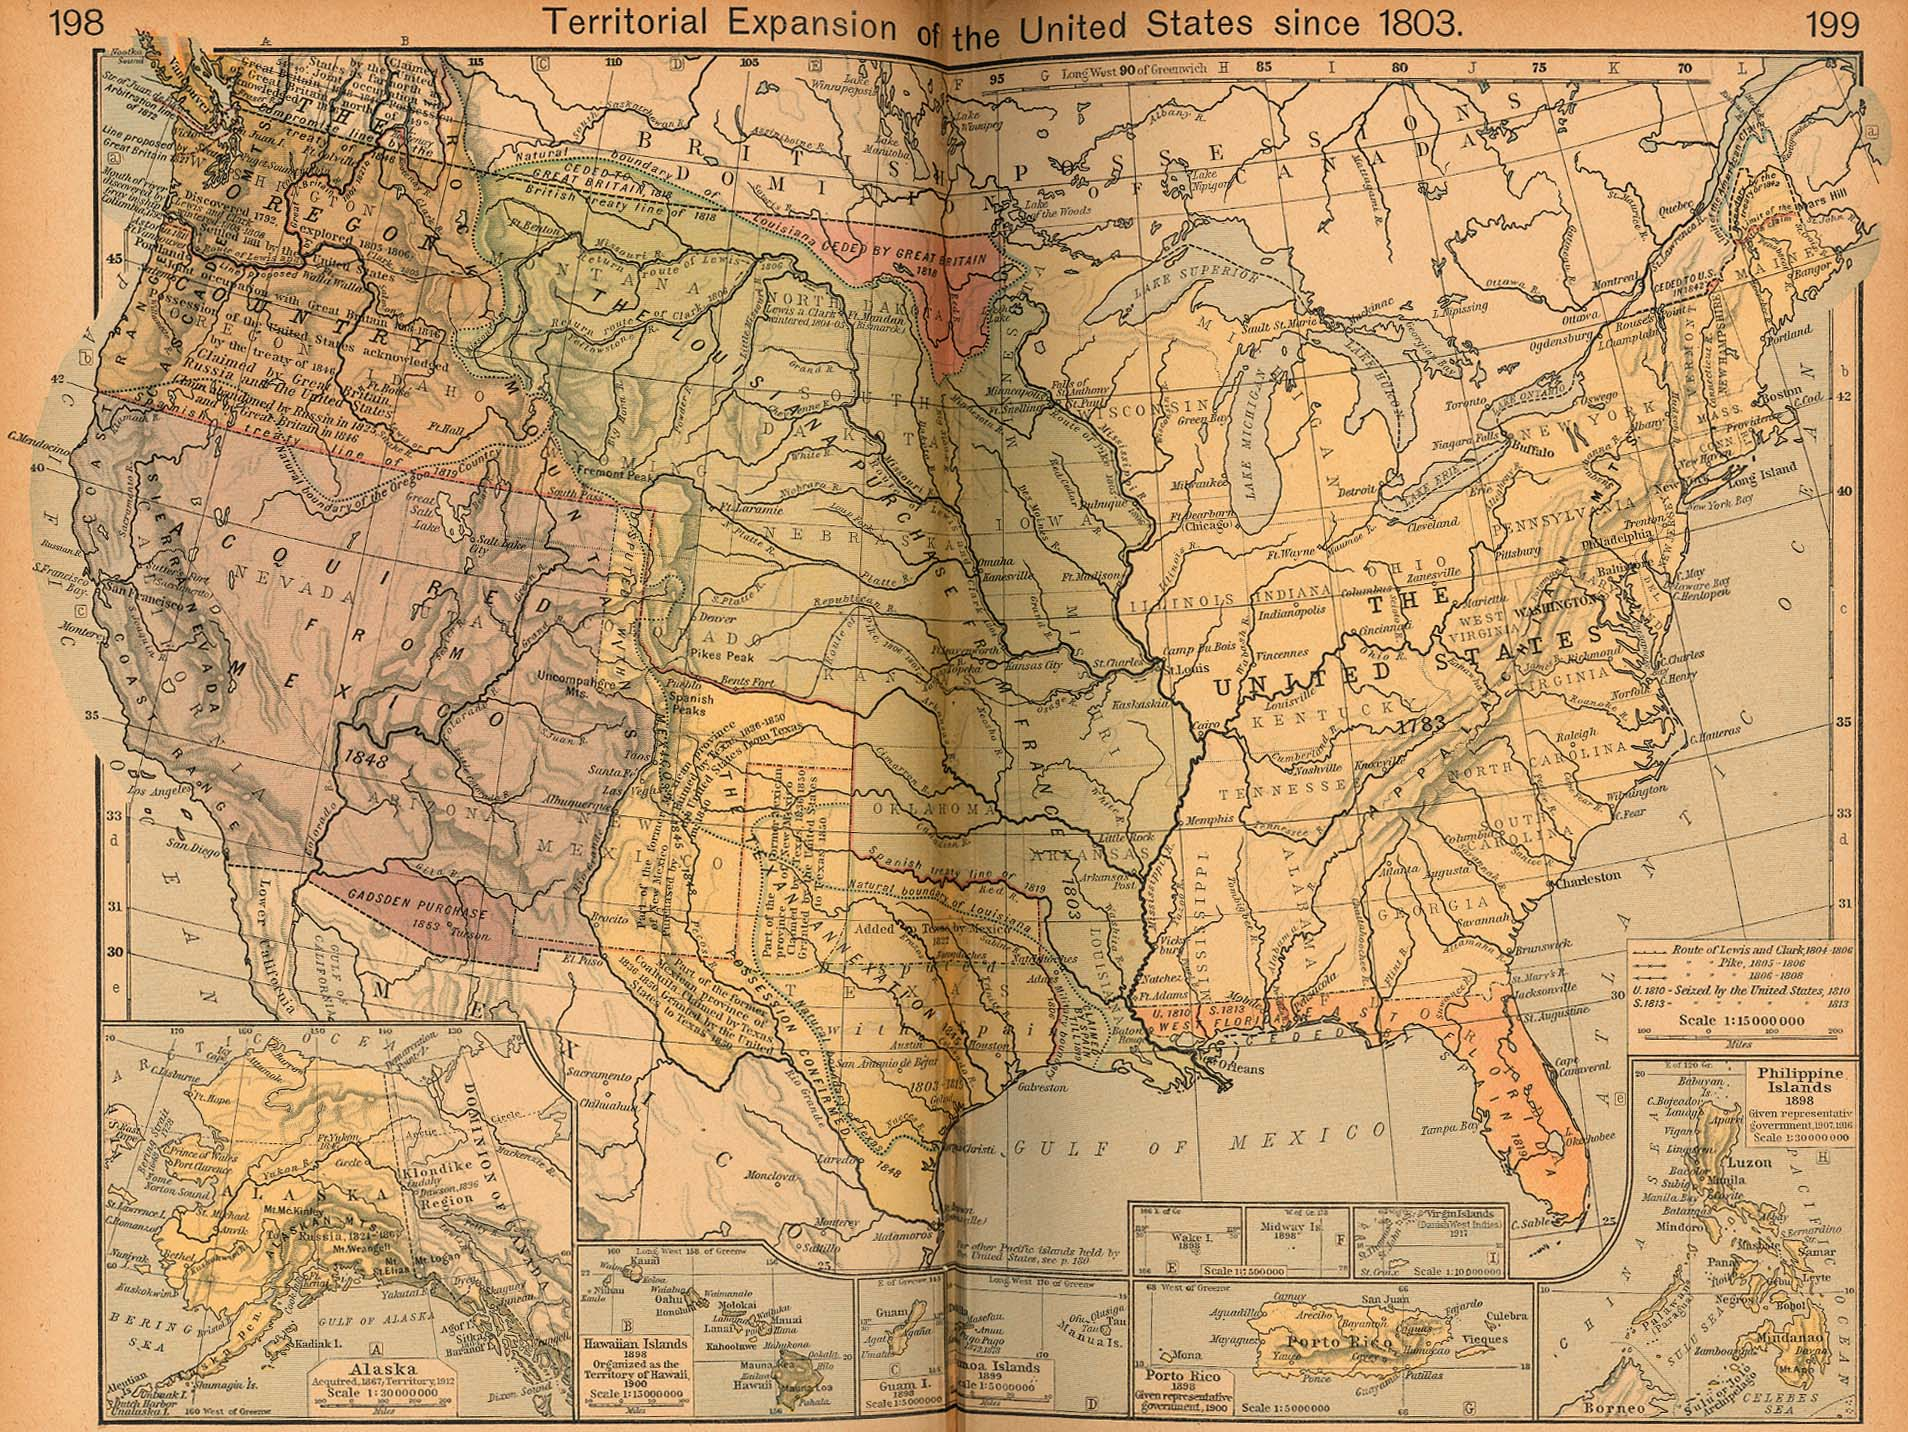 territorial expansion 1800 1850 Territorial expansion 1800-1850 from the years 1800-1850 the nation was full of battles and prosperity territorial expansion was a cause in most of the battles, but also gained prosperity for the nation.